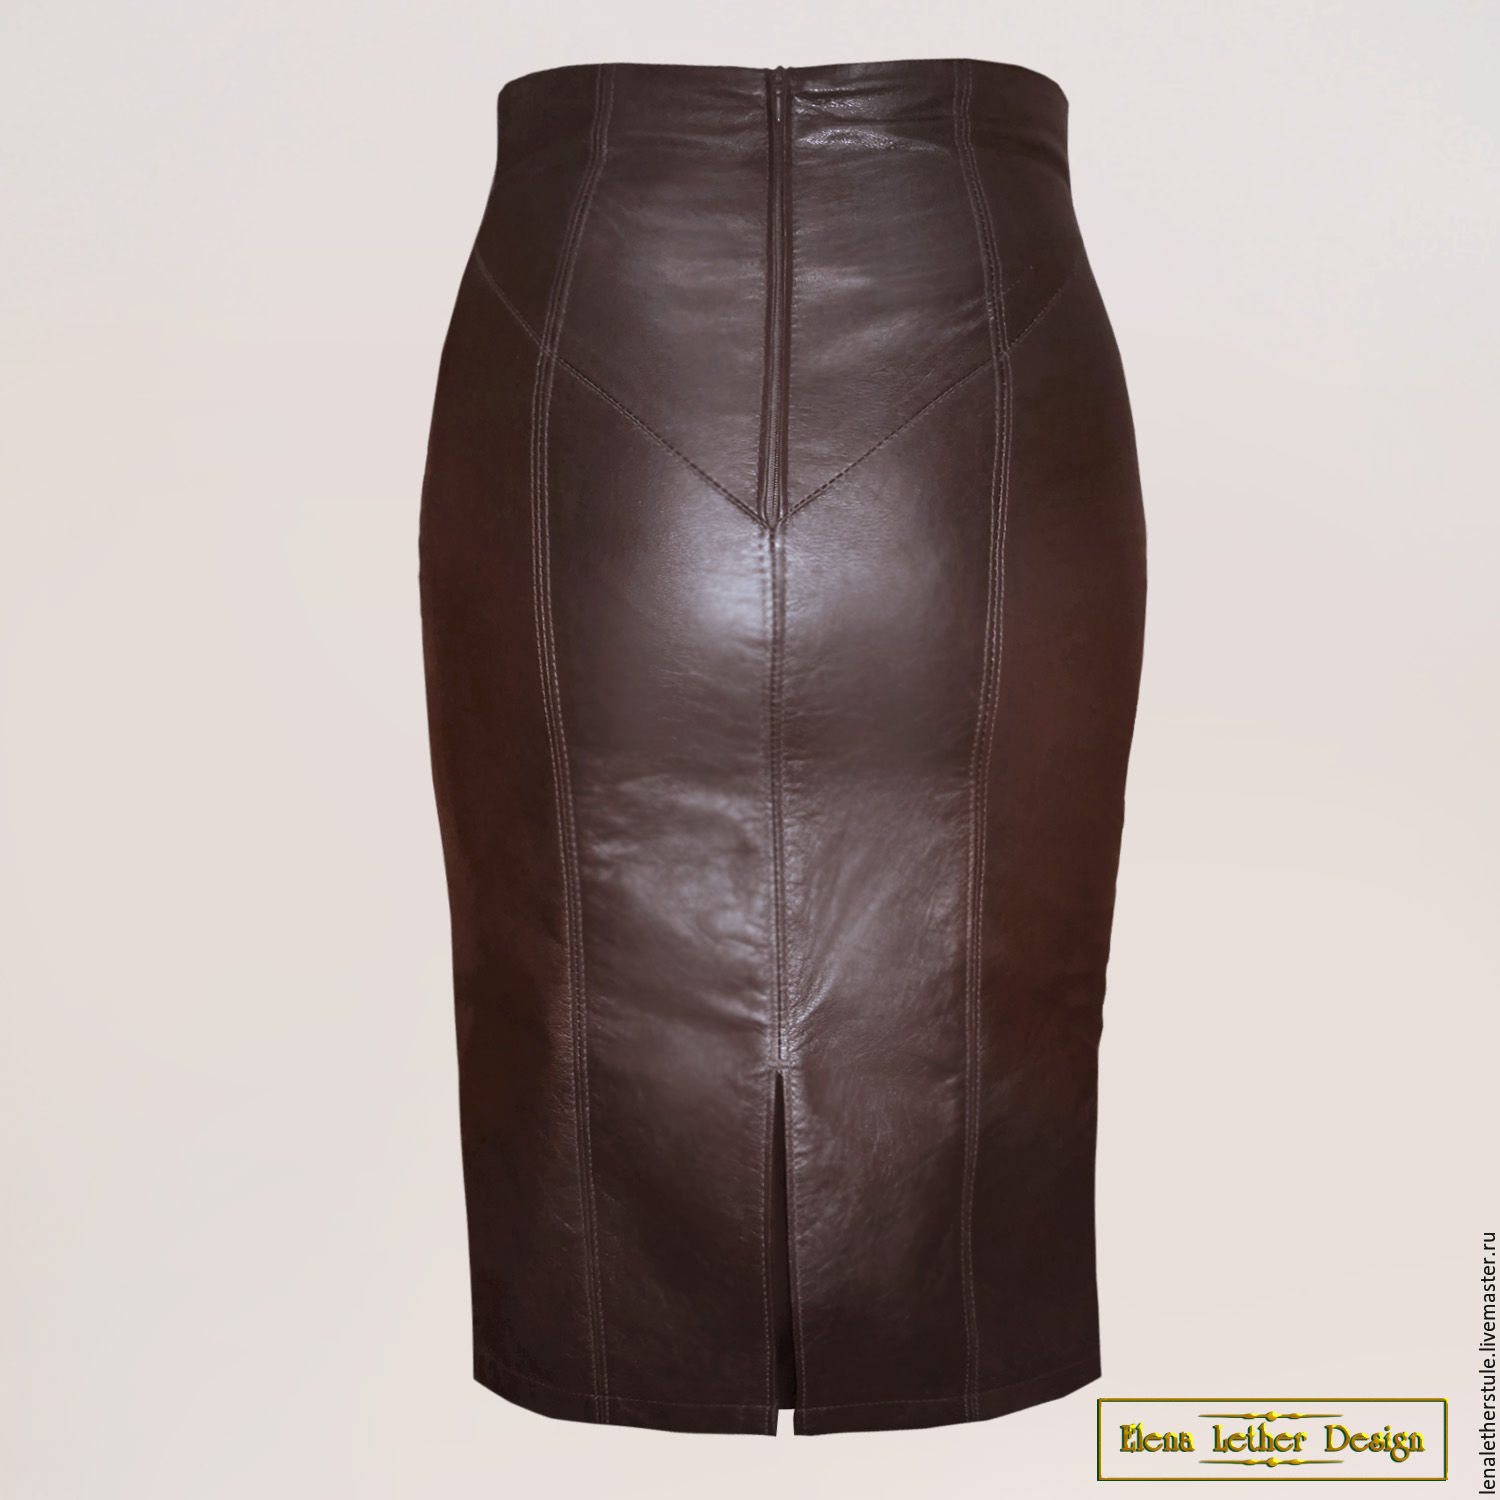 Buy Pencil skirt with high waist made of genuine leather or suede